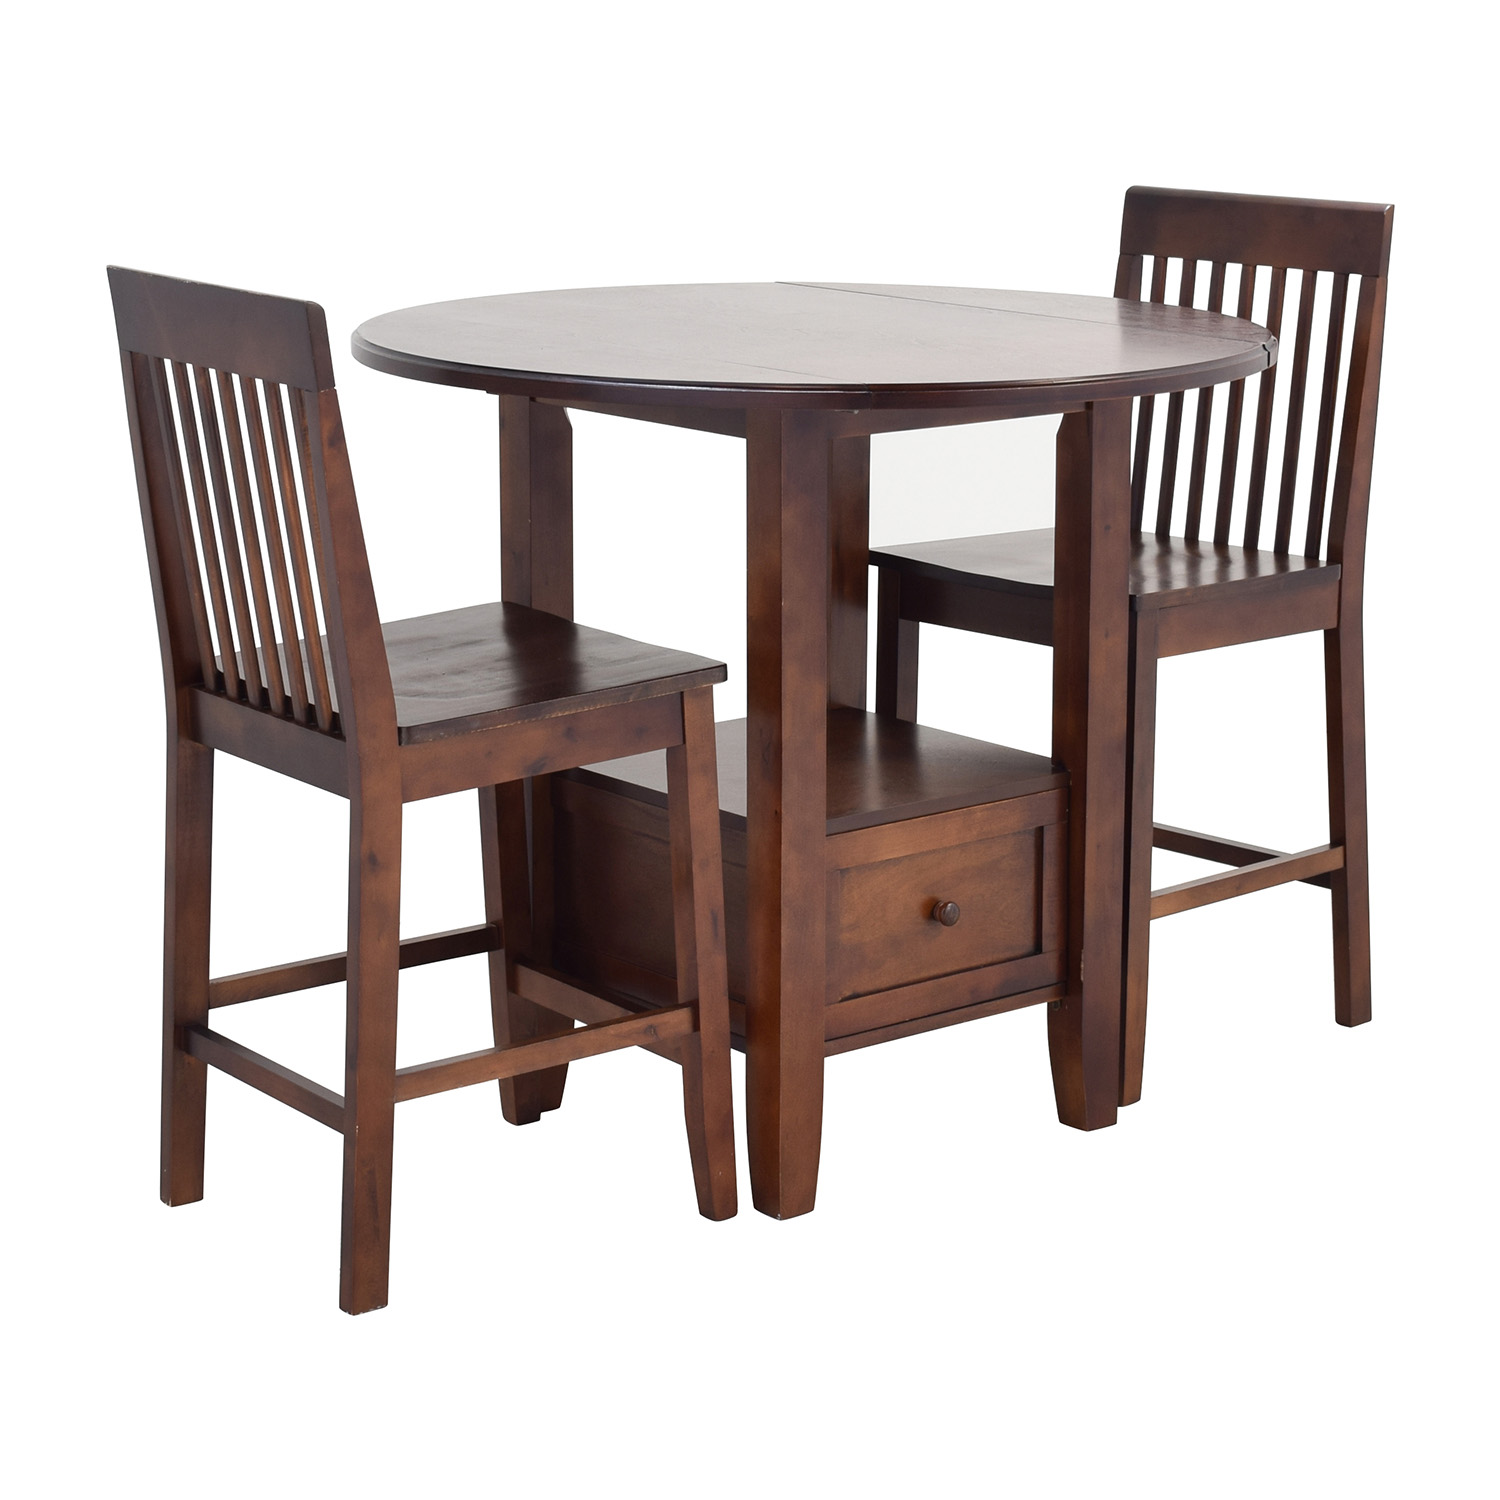 Pub Table Sets | Oscargregeborn Interior Decor Ideas